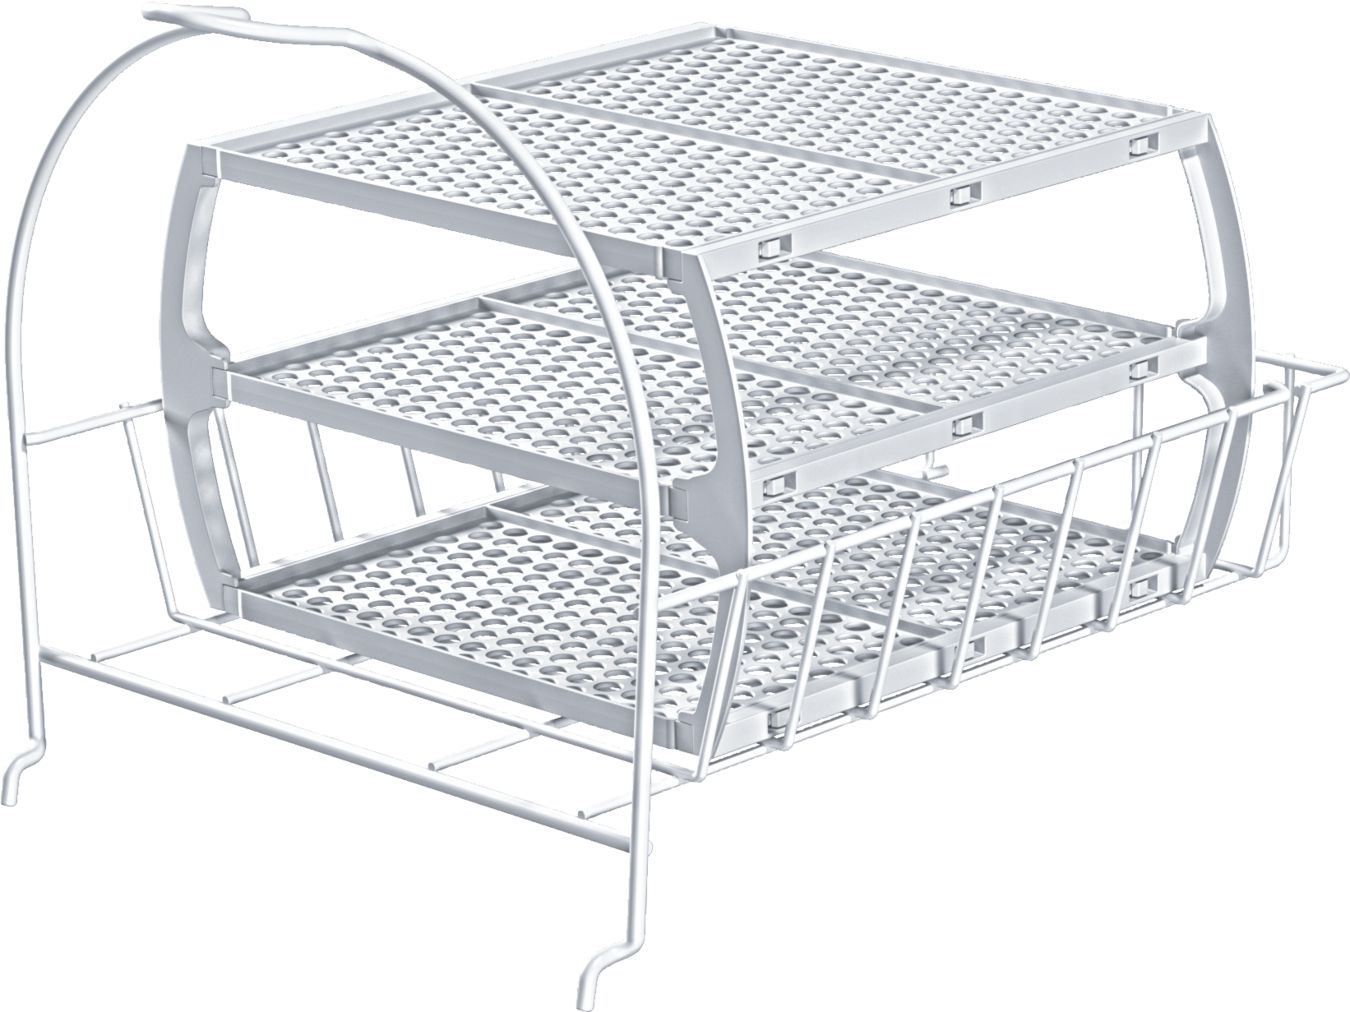 Model: WMZ20600 | WMZ20600Accessories Laundry CareDrying Rack for 24